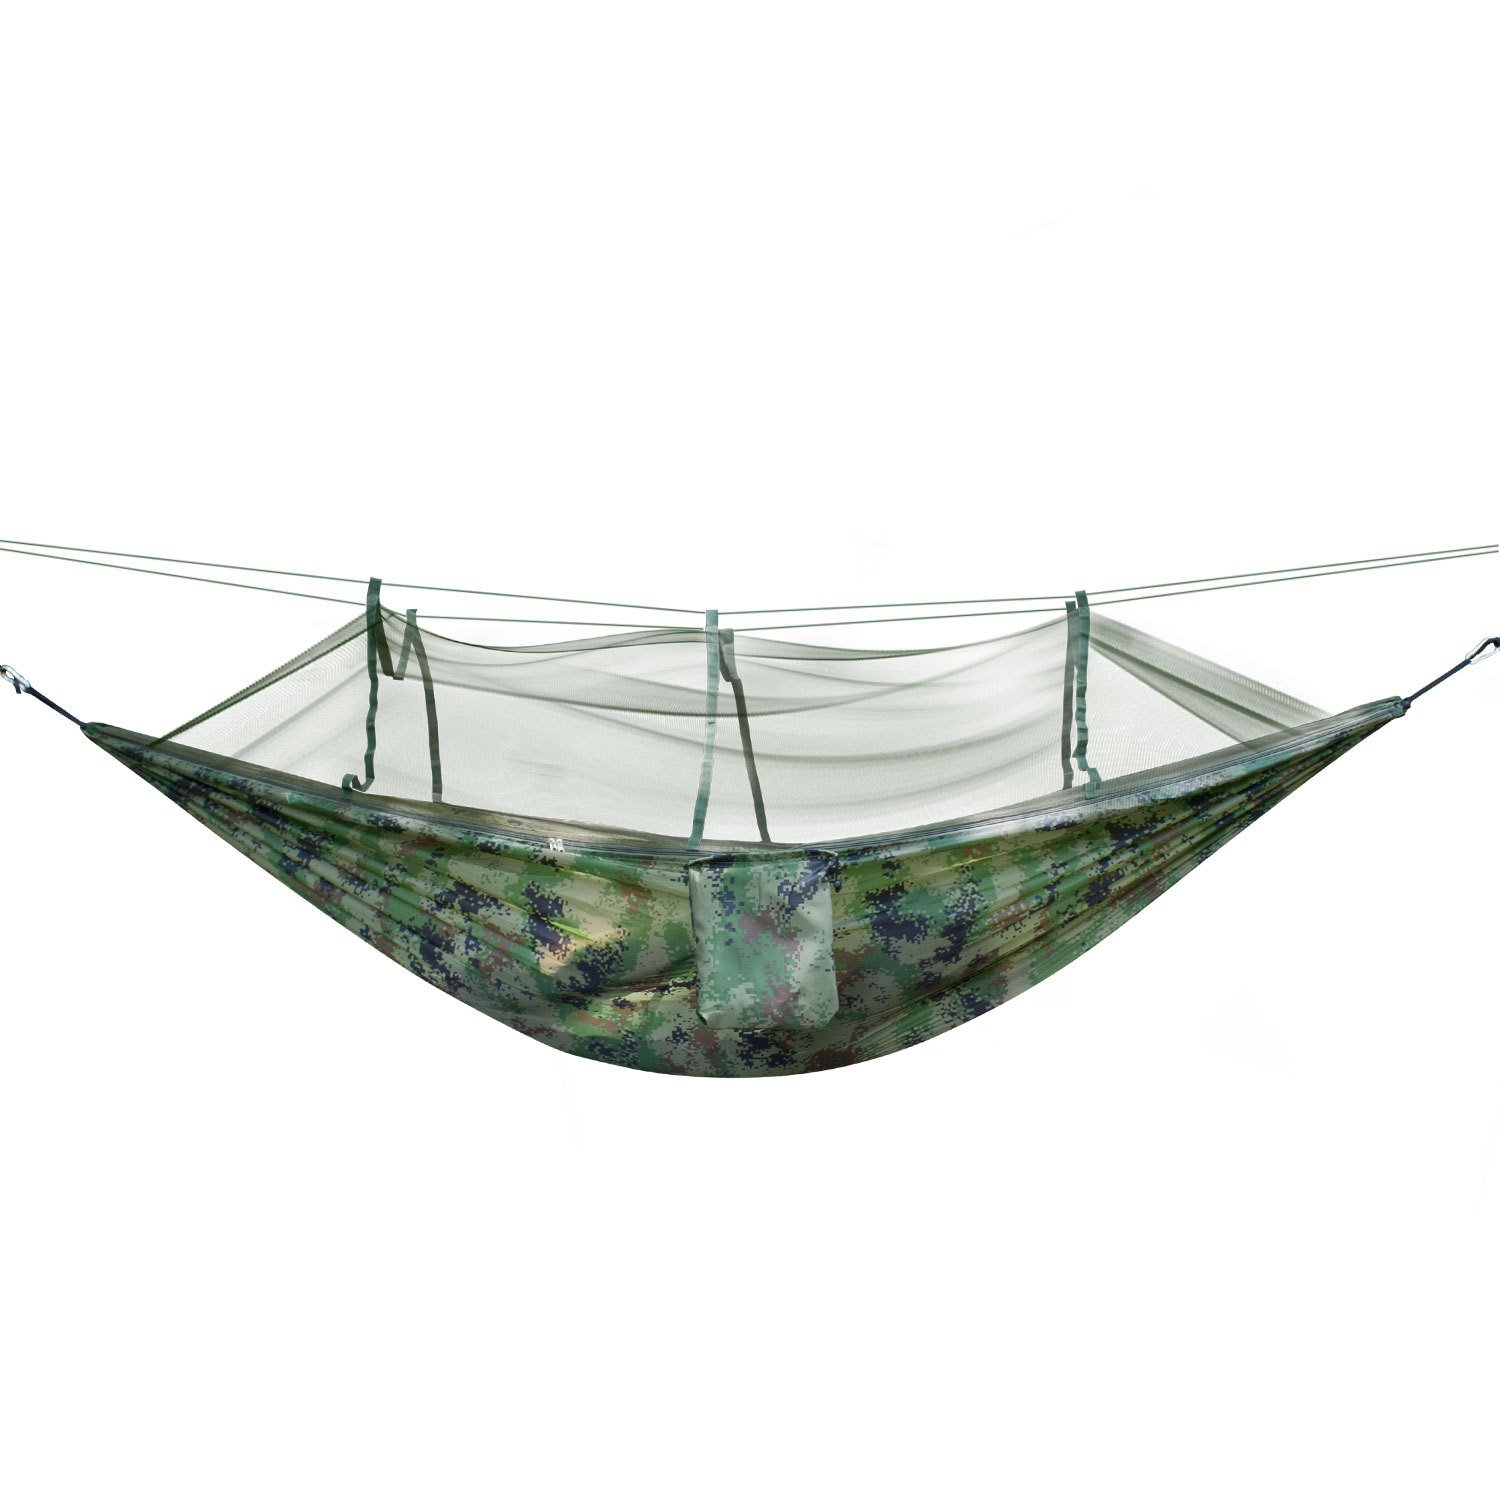 Camping Hammock with Mosquito Net, Heavy Duty Jungle Portable Hanging Bed Sleeping Hammocks Mosquito Net Bed for Patio,Outdoor, Camping, Hiking,Travelling, Beach (Camouflage) HY